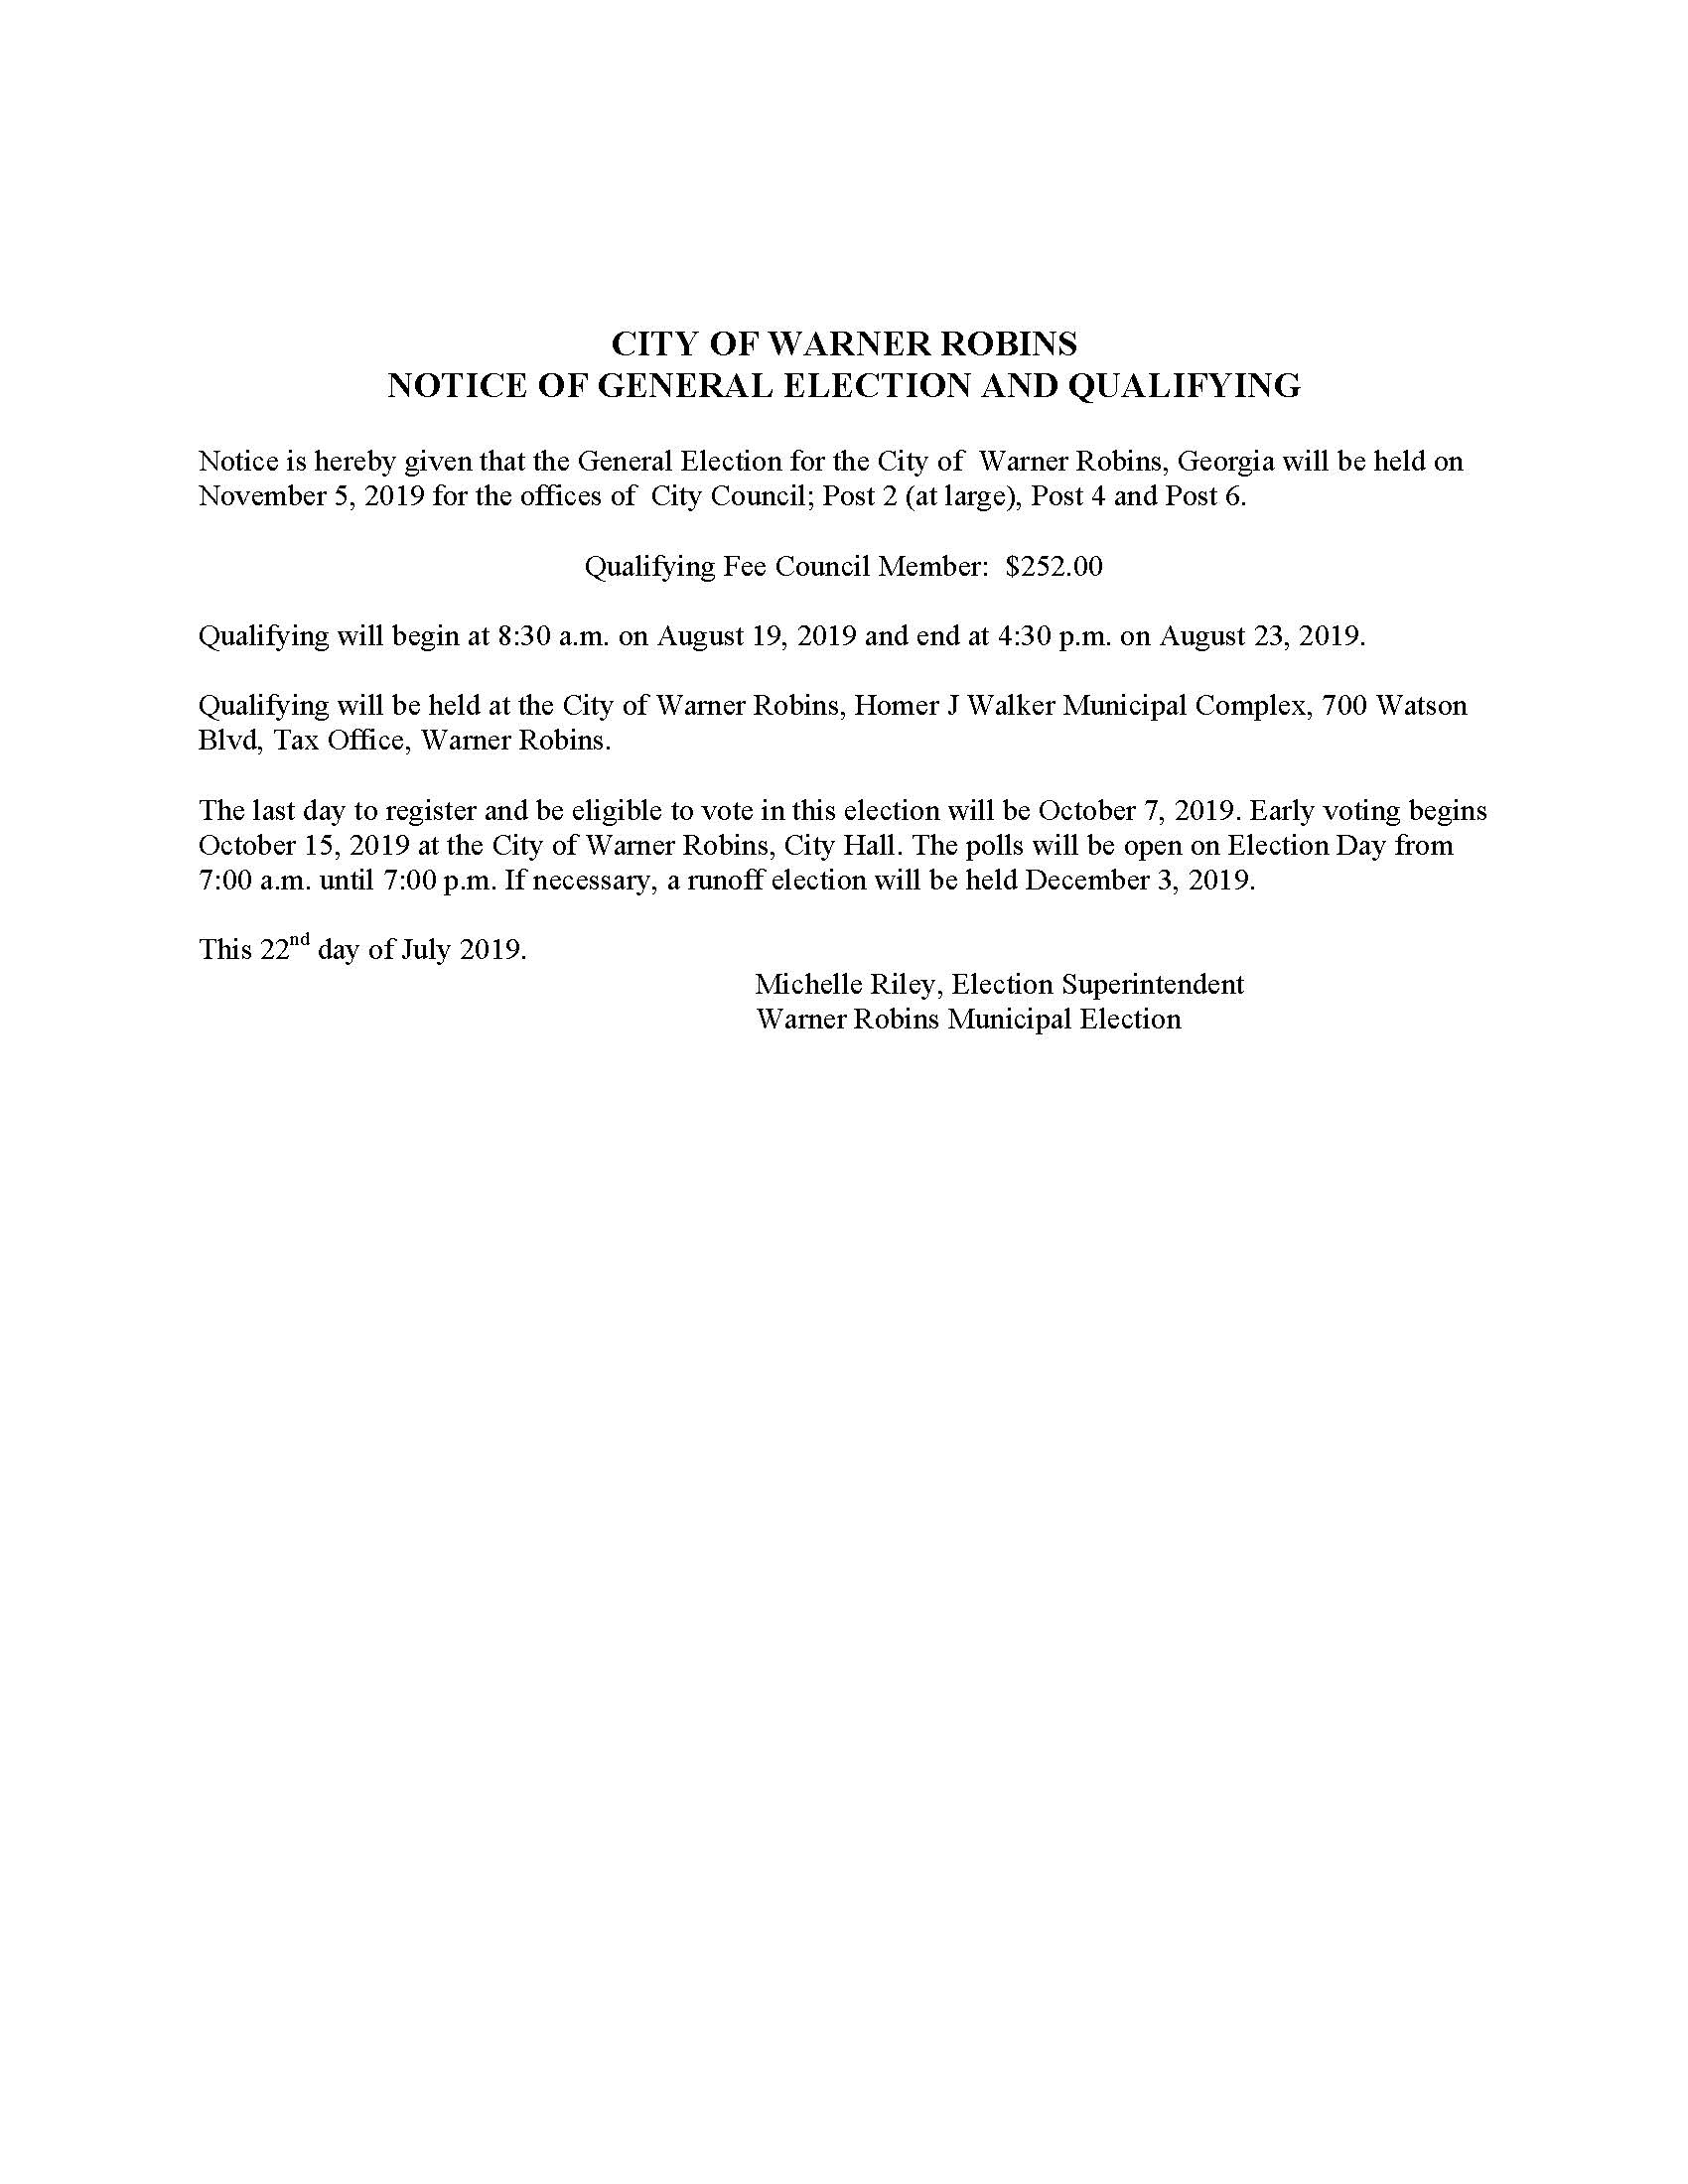 CITY OF WARNER ROBINS   NOTICE OF GENERAL ELECTION AND QUALIFYING